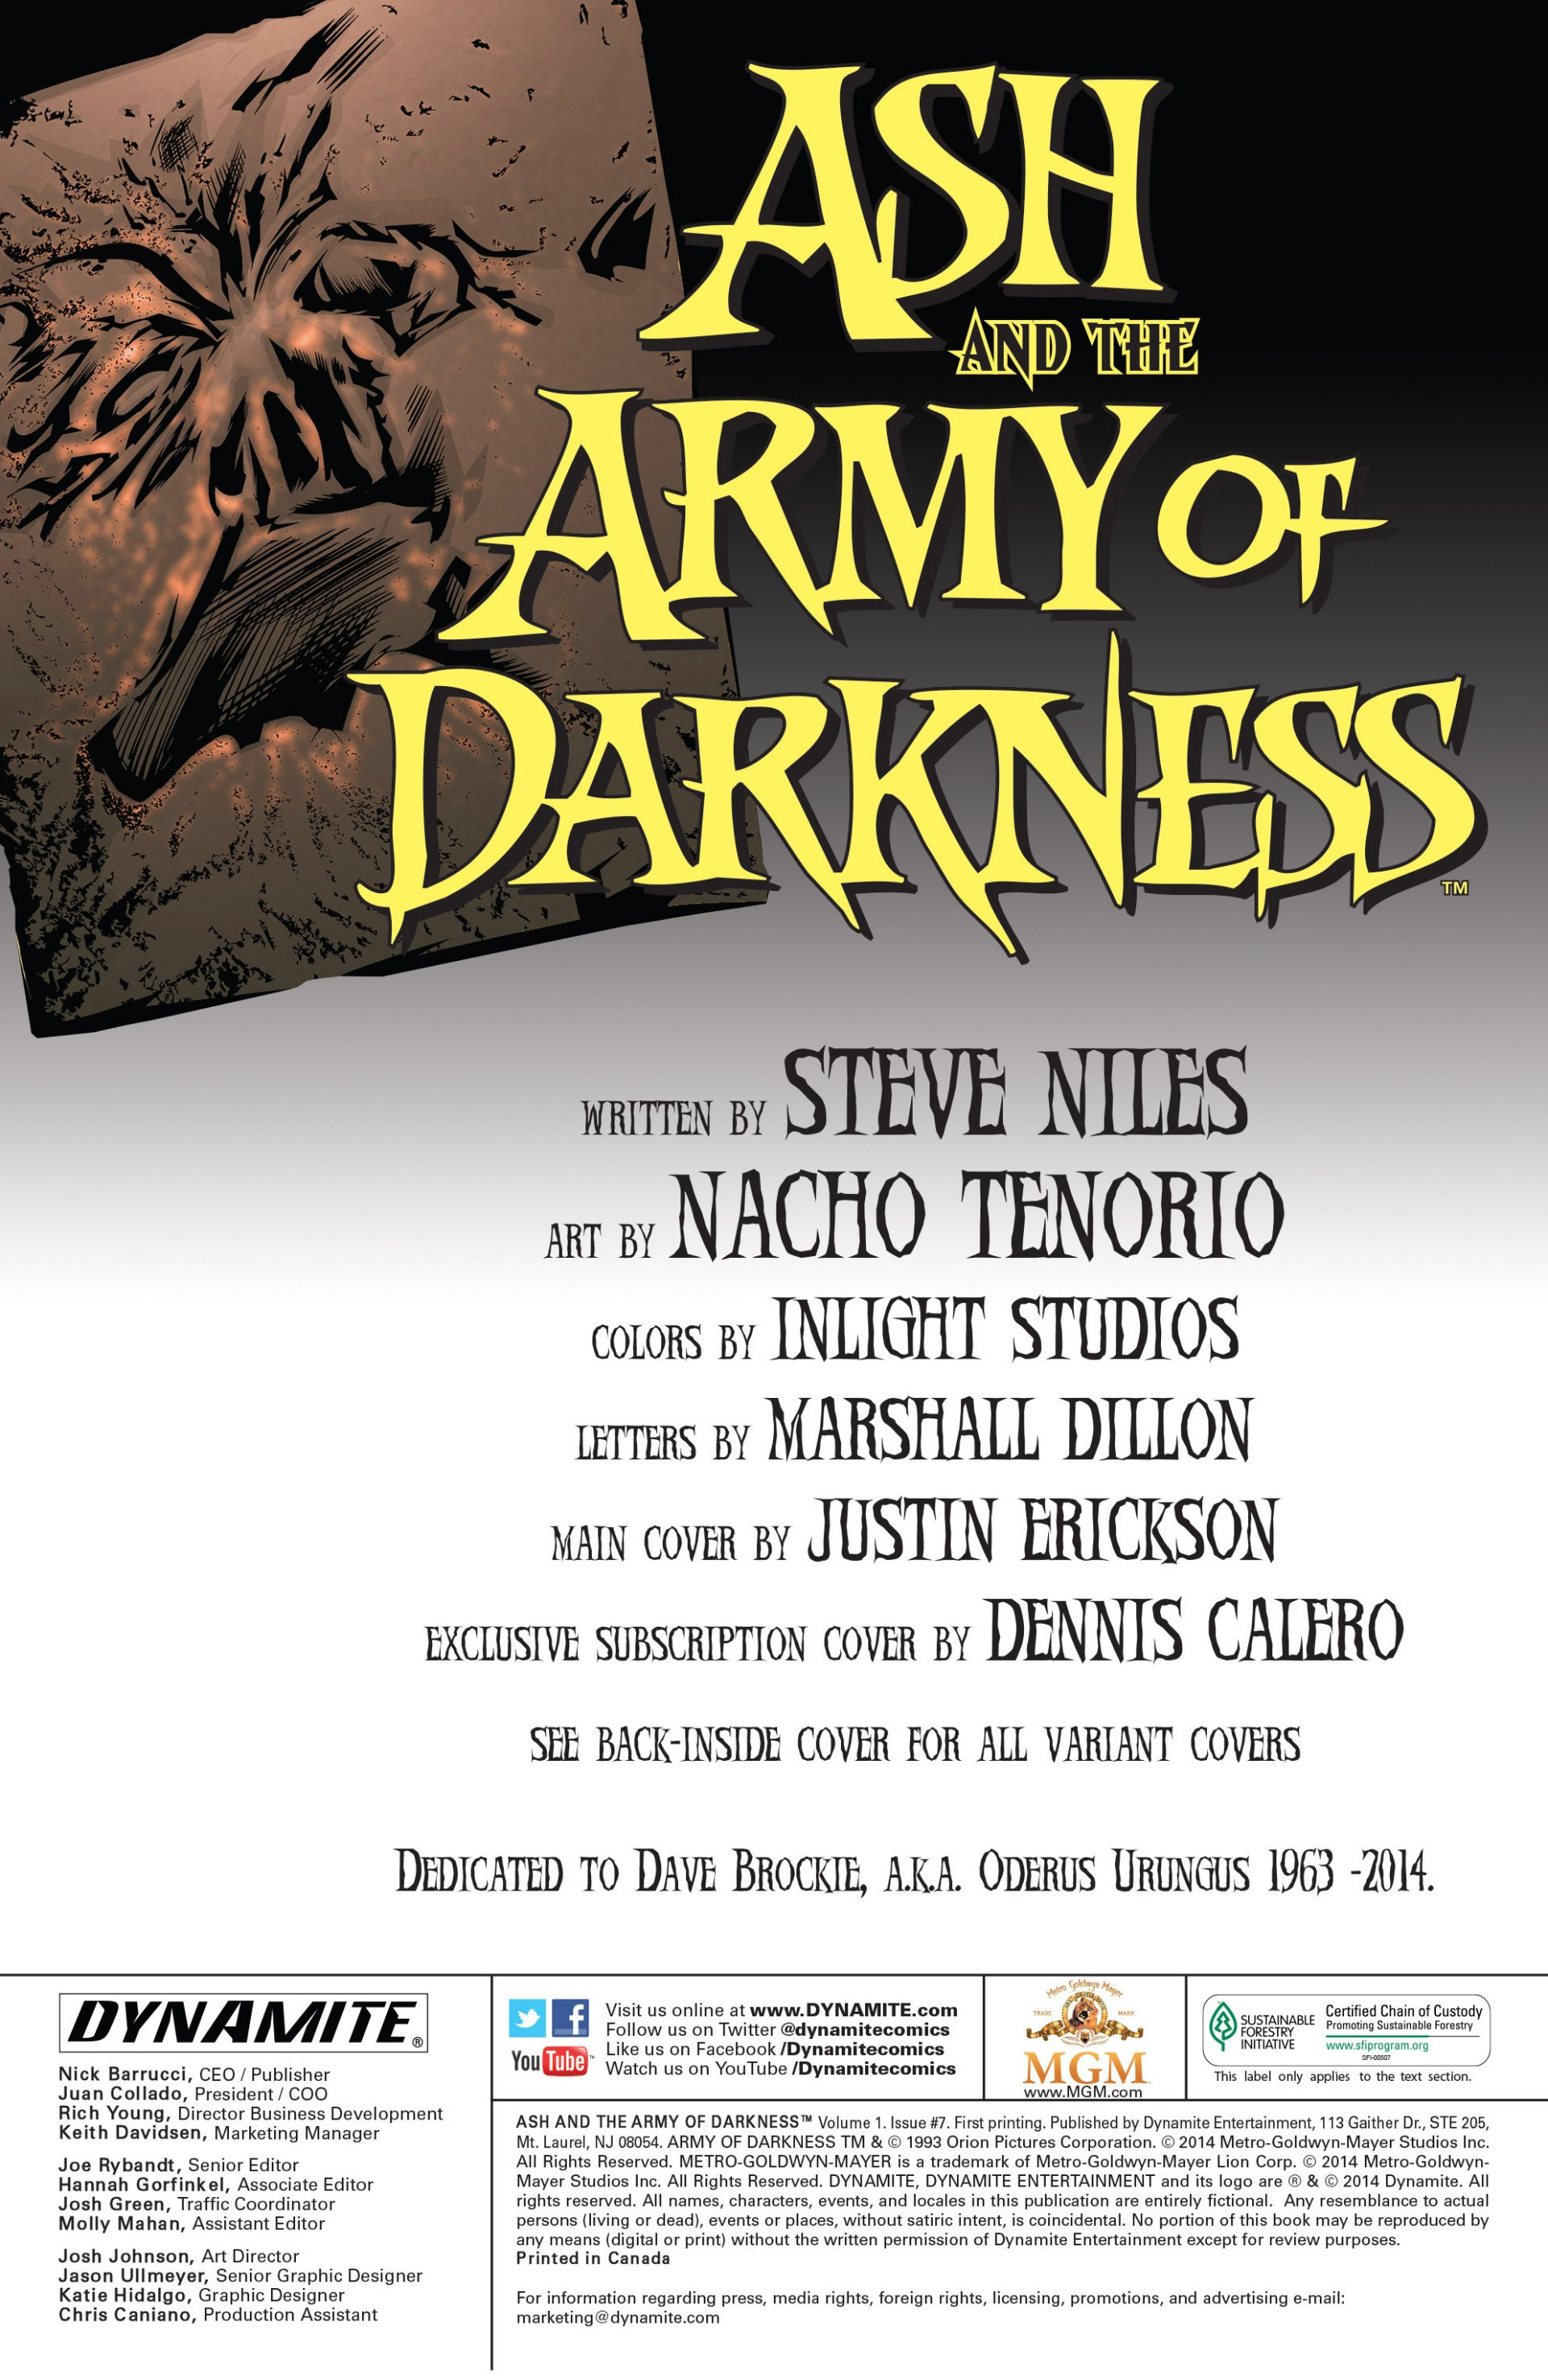 Read online Ash and the Army of Darkness comic -  Issue #7 - 2